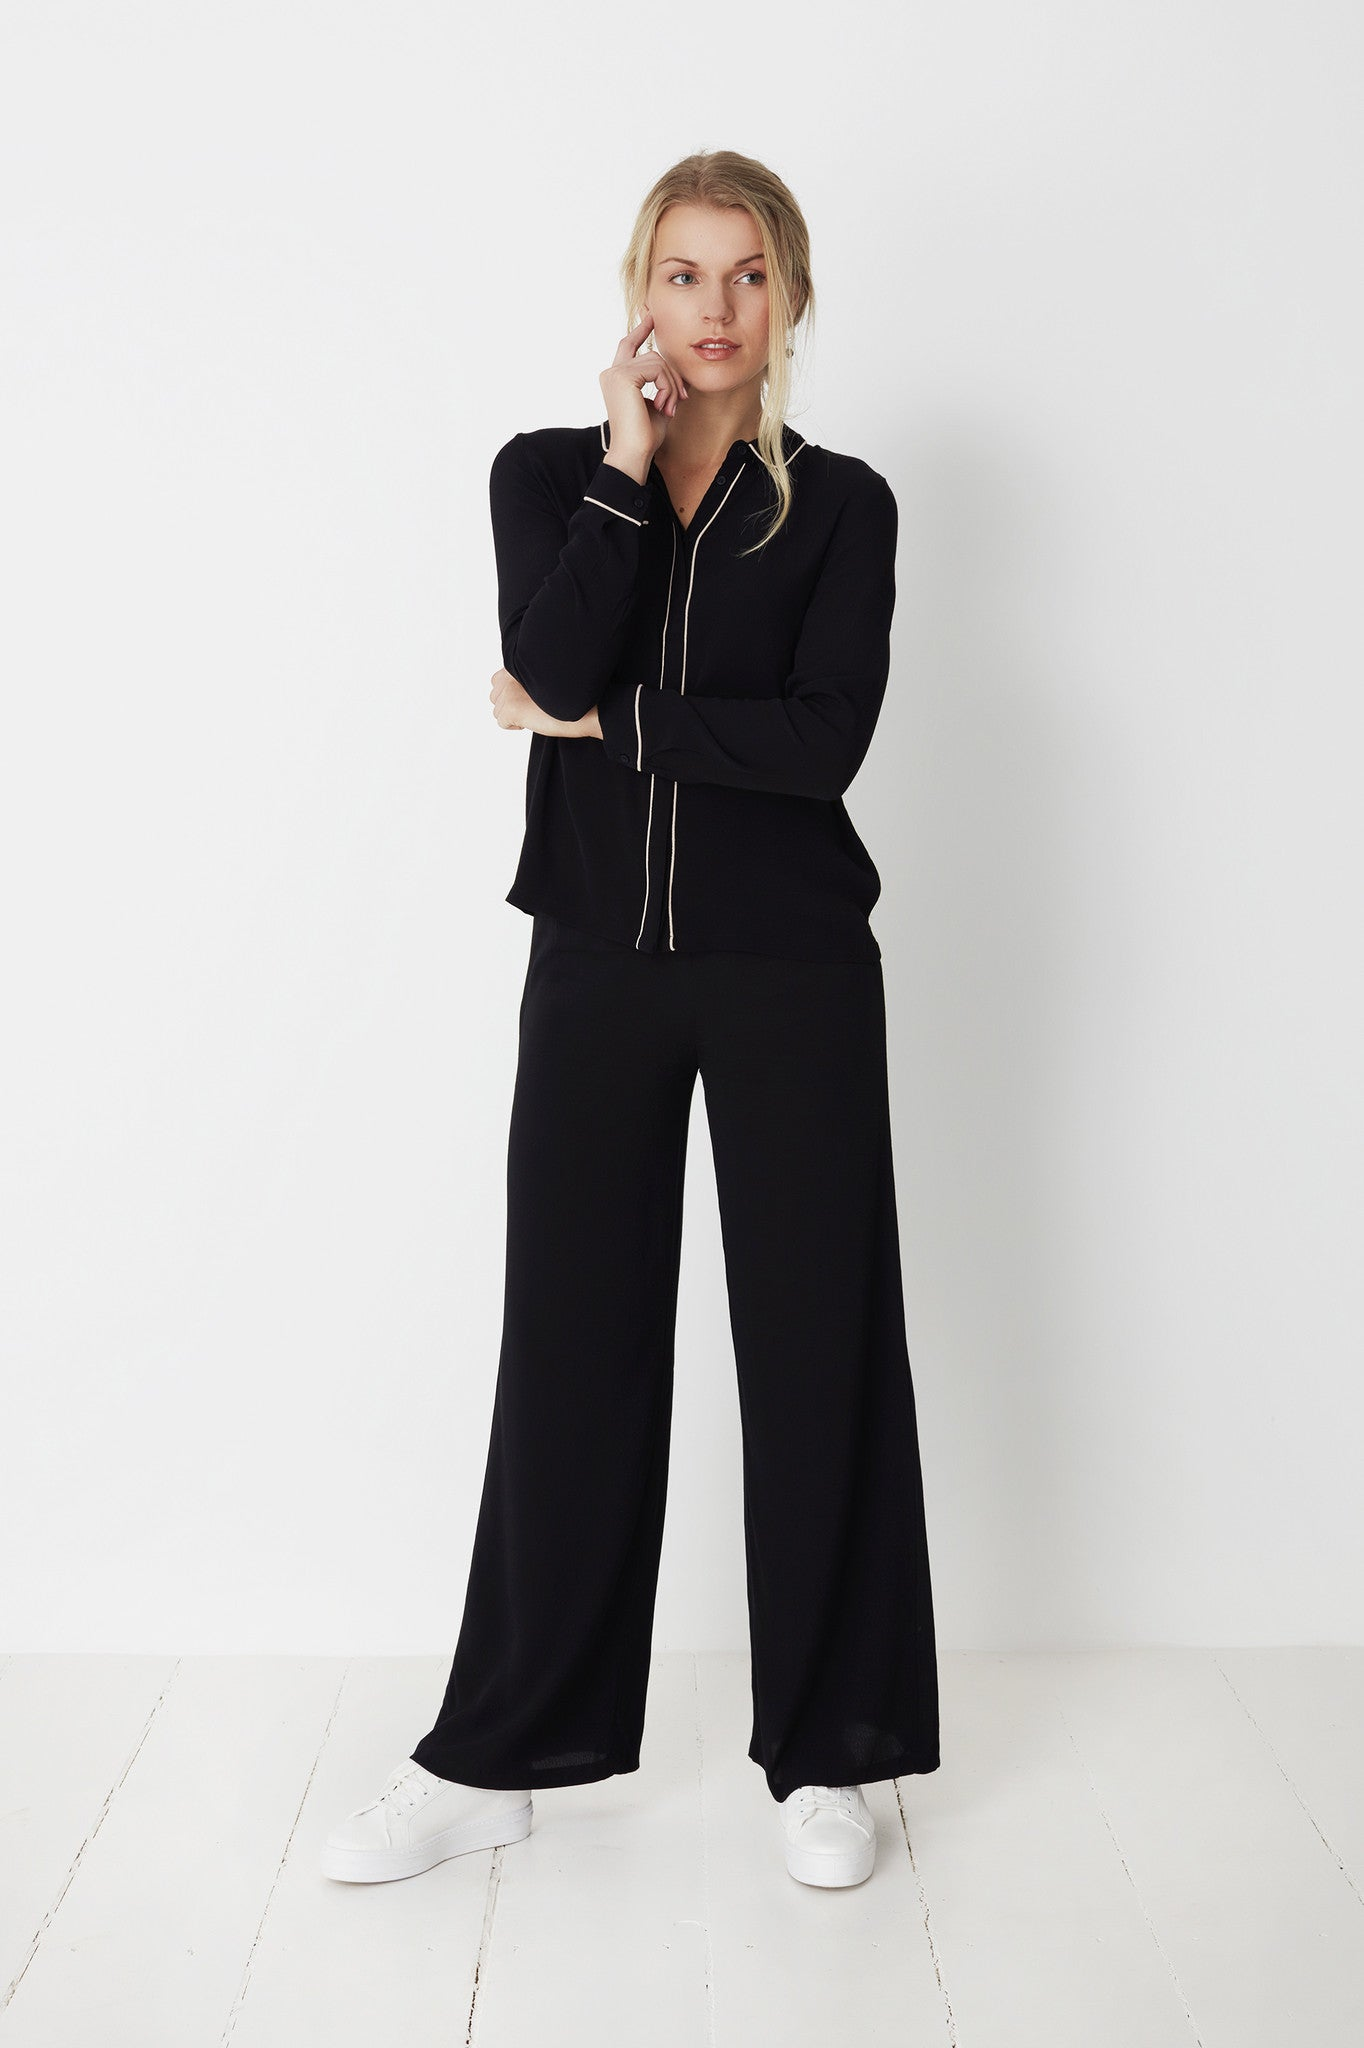 Celeano Trousers By Rebeca Rebeca No Ordinary Suit